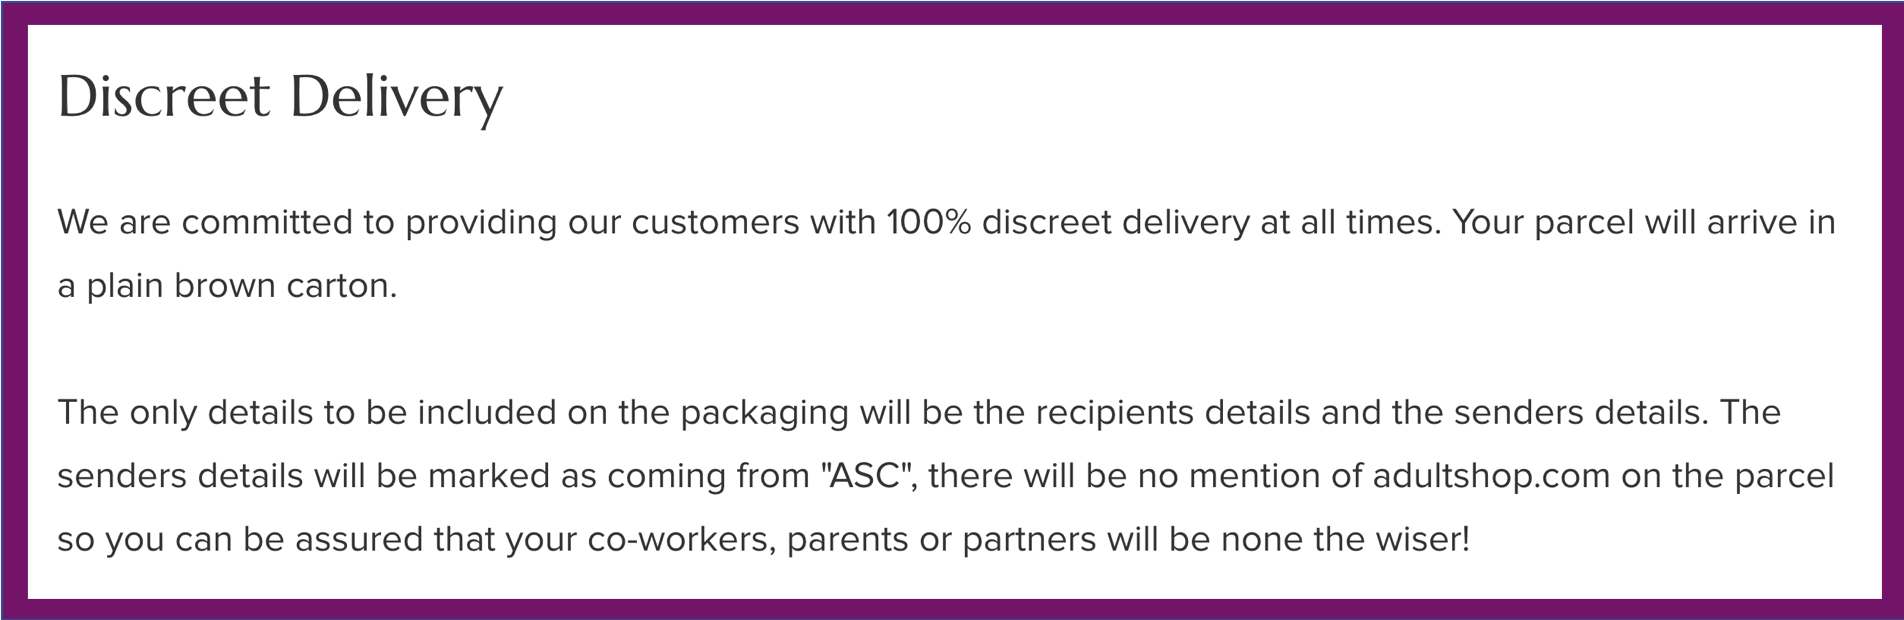 Discreet delivery note | Beanstalk Mums